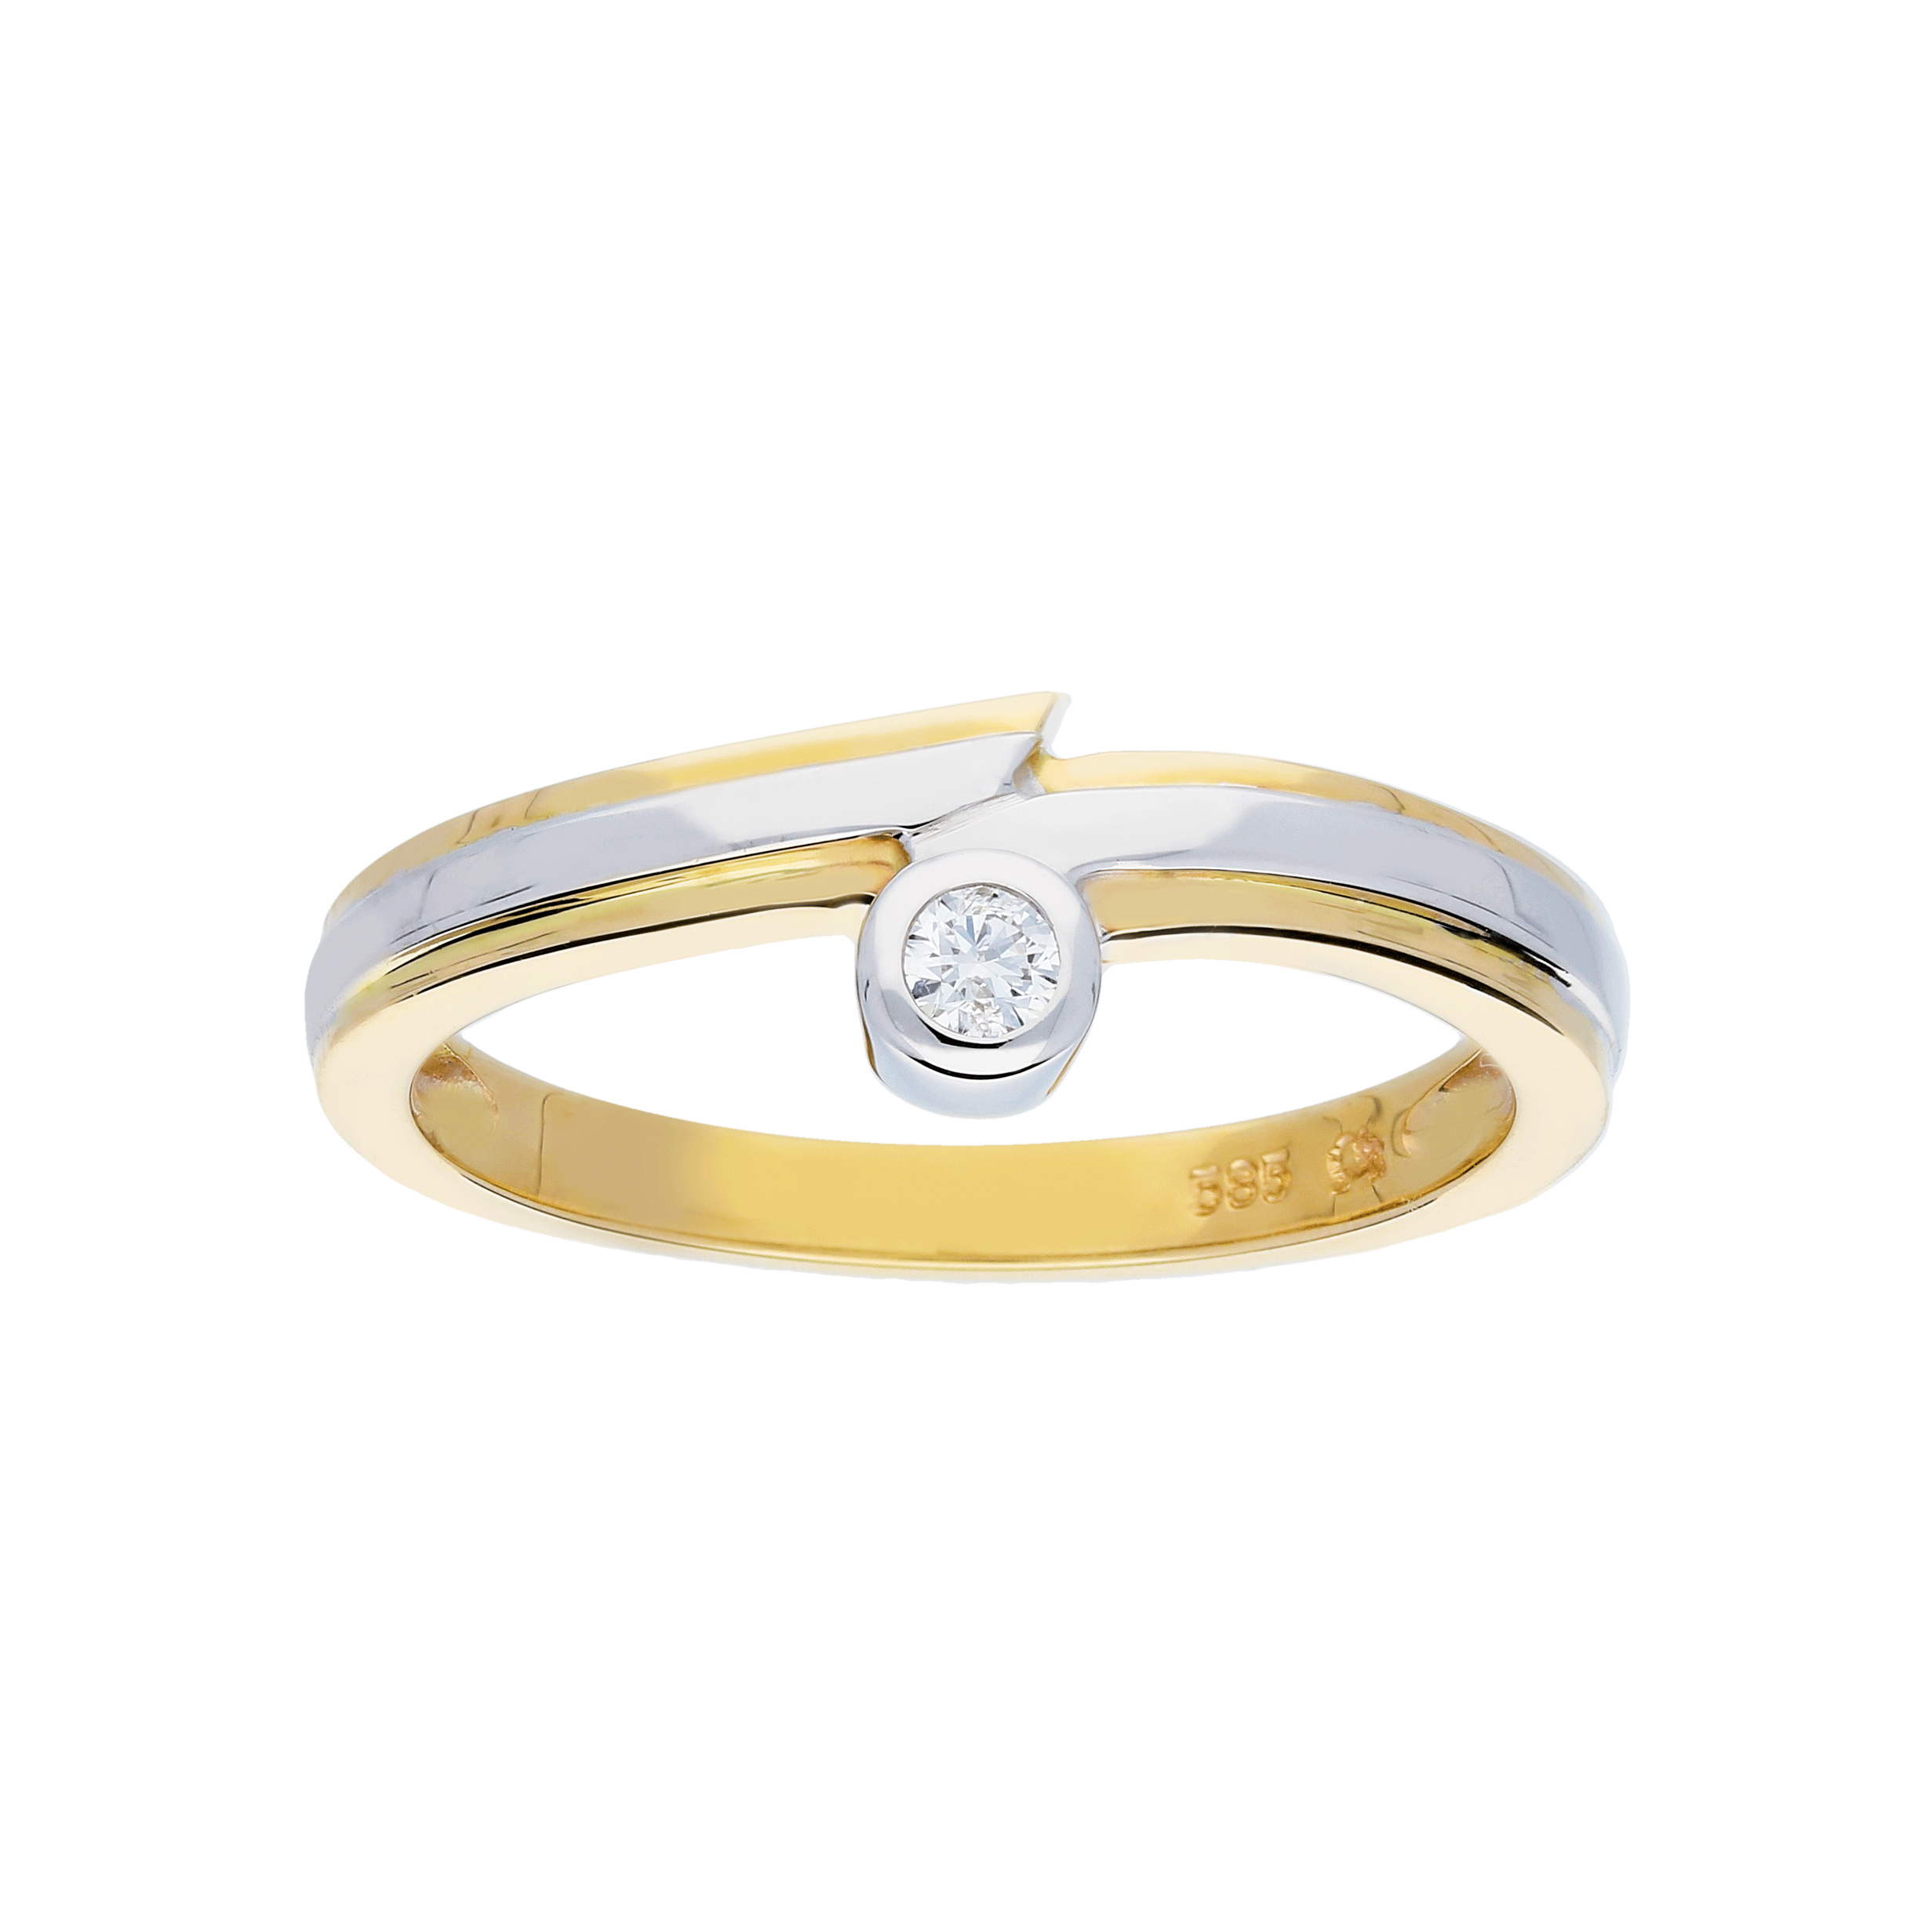 Glow Gouden Ring Bicolor Glanzend Diamant 1 0.055ct G si 214.5225.52